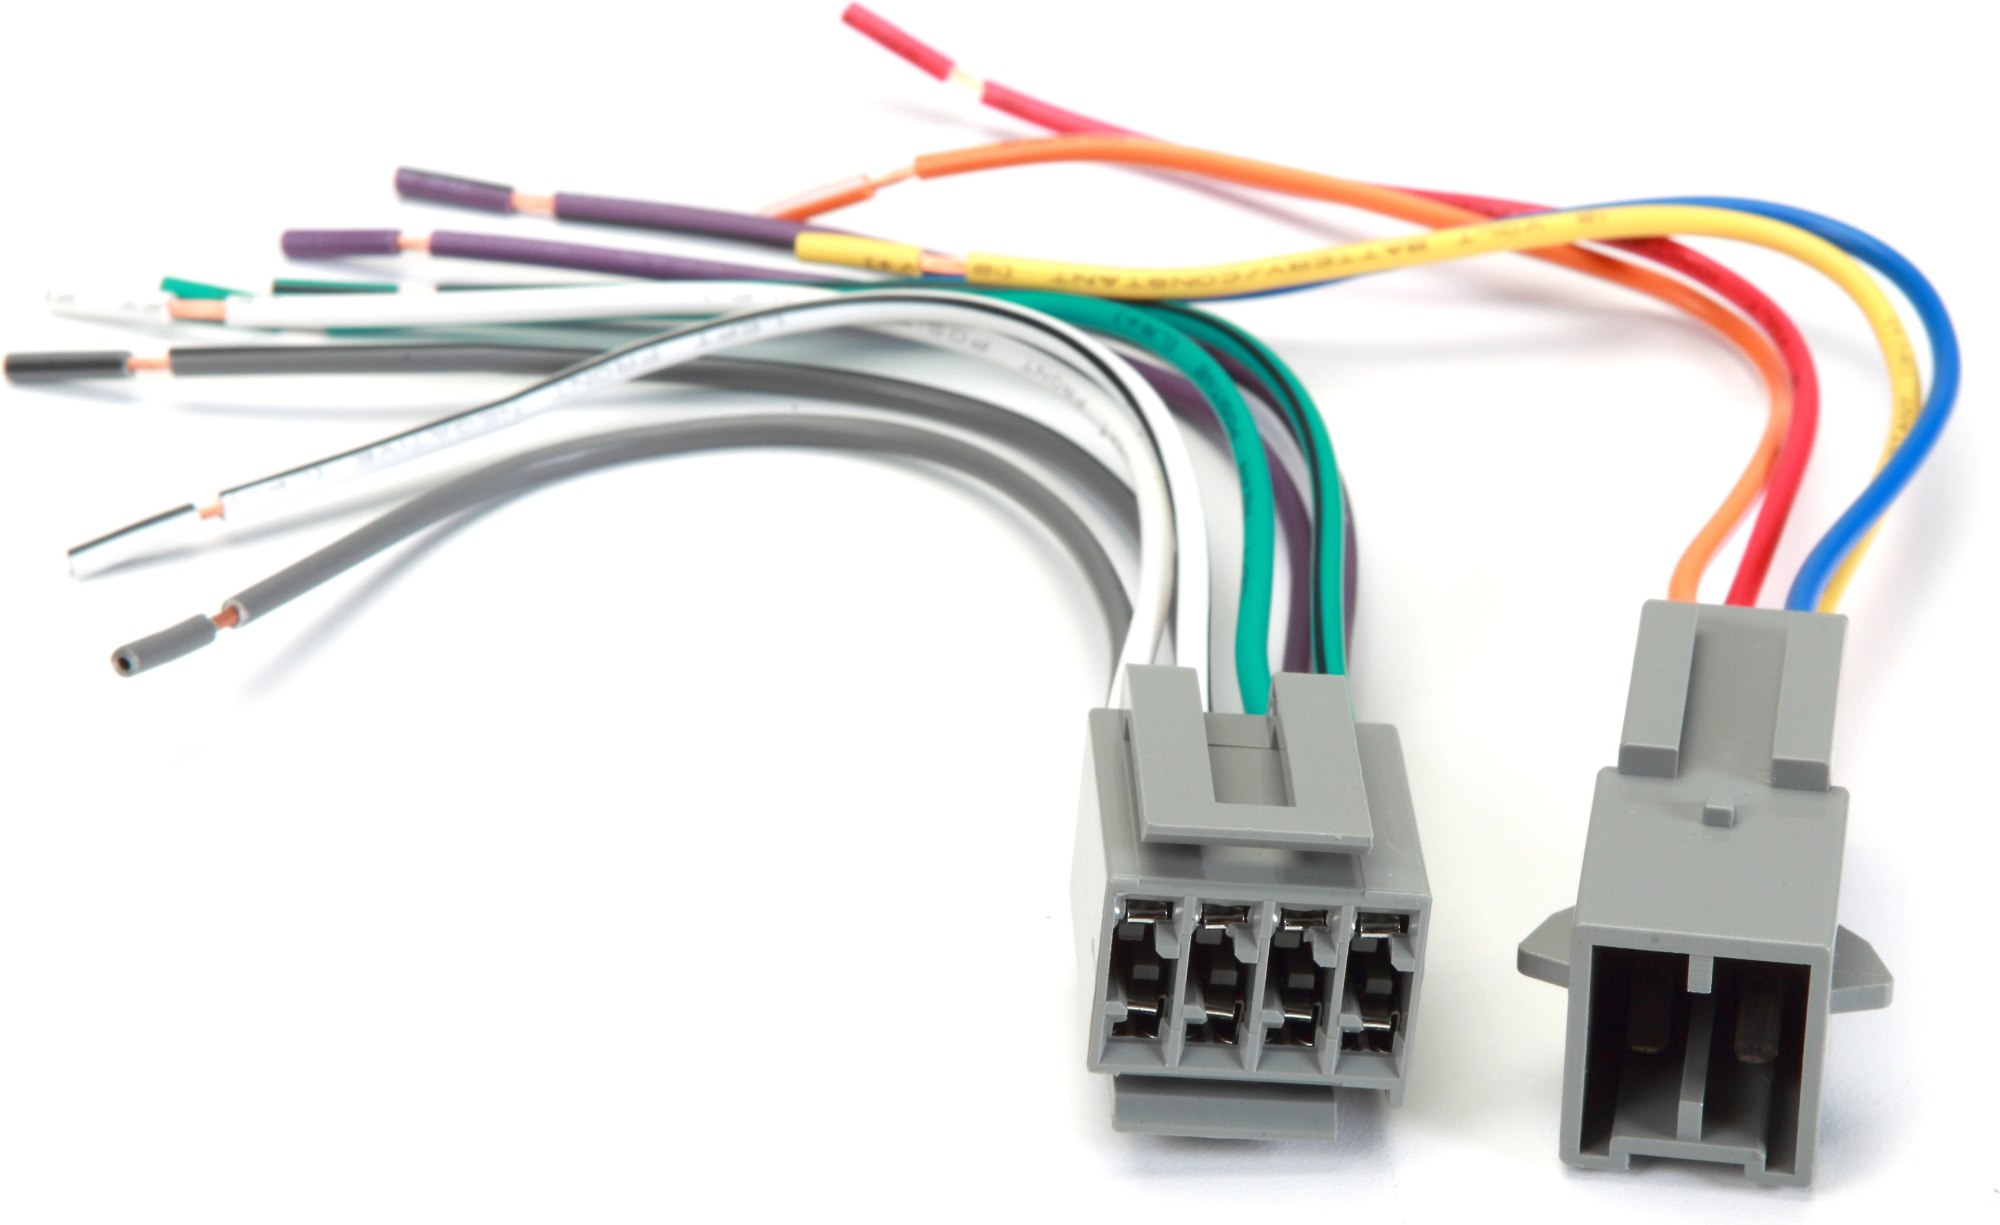 hight resolution of metra 70 1772 receiver wire harness connect a new car stereo in select 1982 88 ford lincoln and mercury vehicles with square plugs at crutchfield com